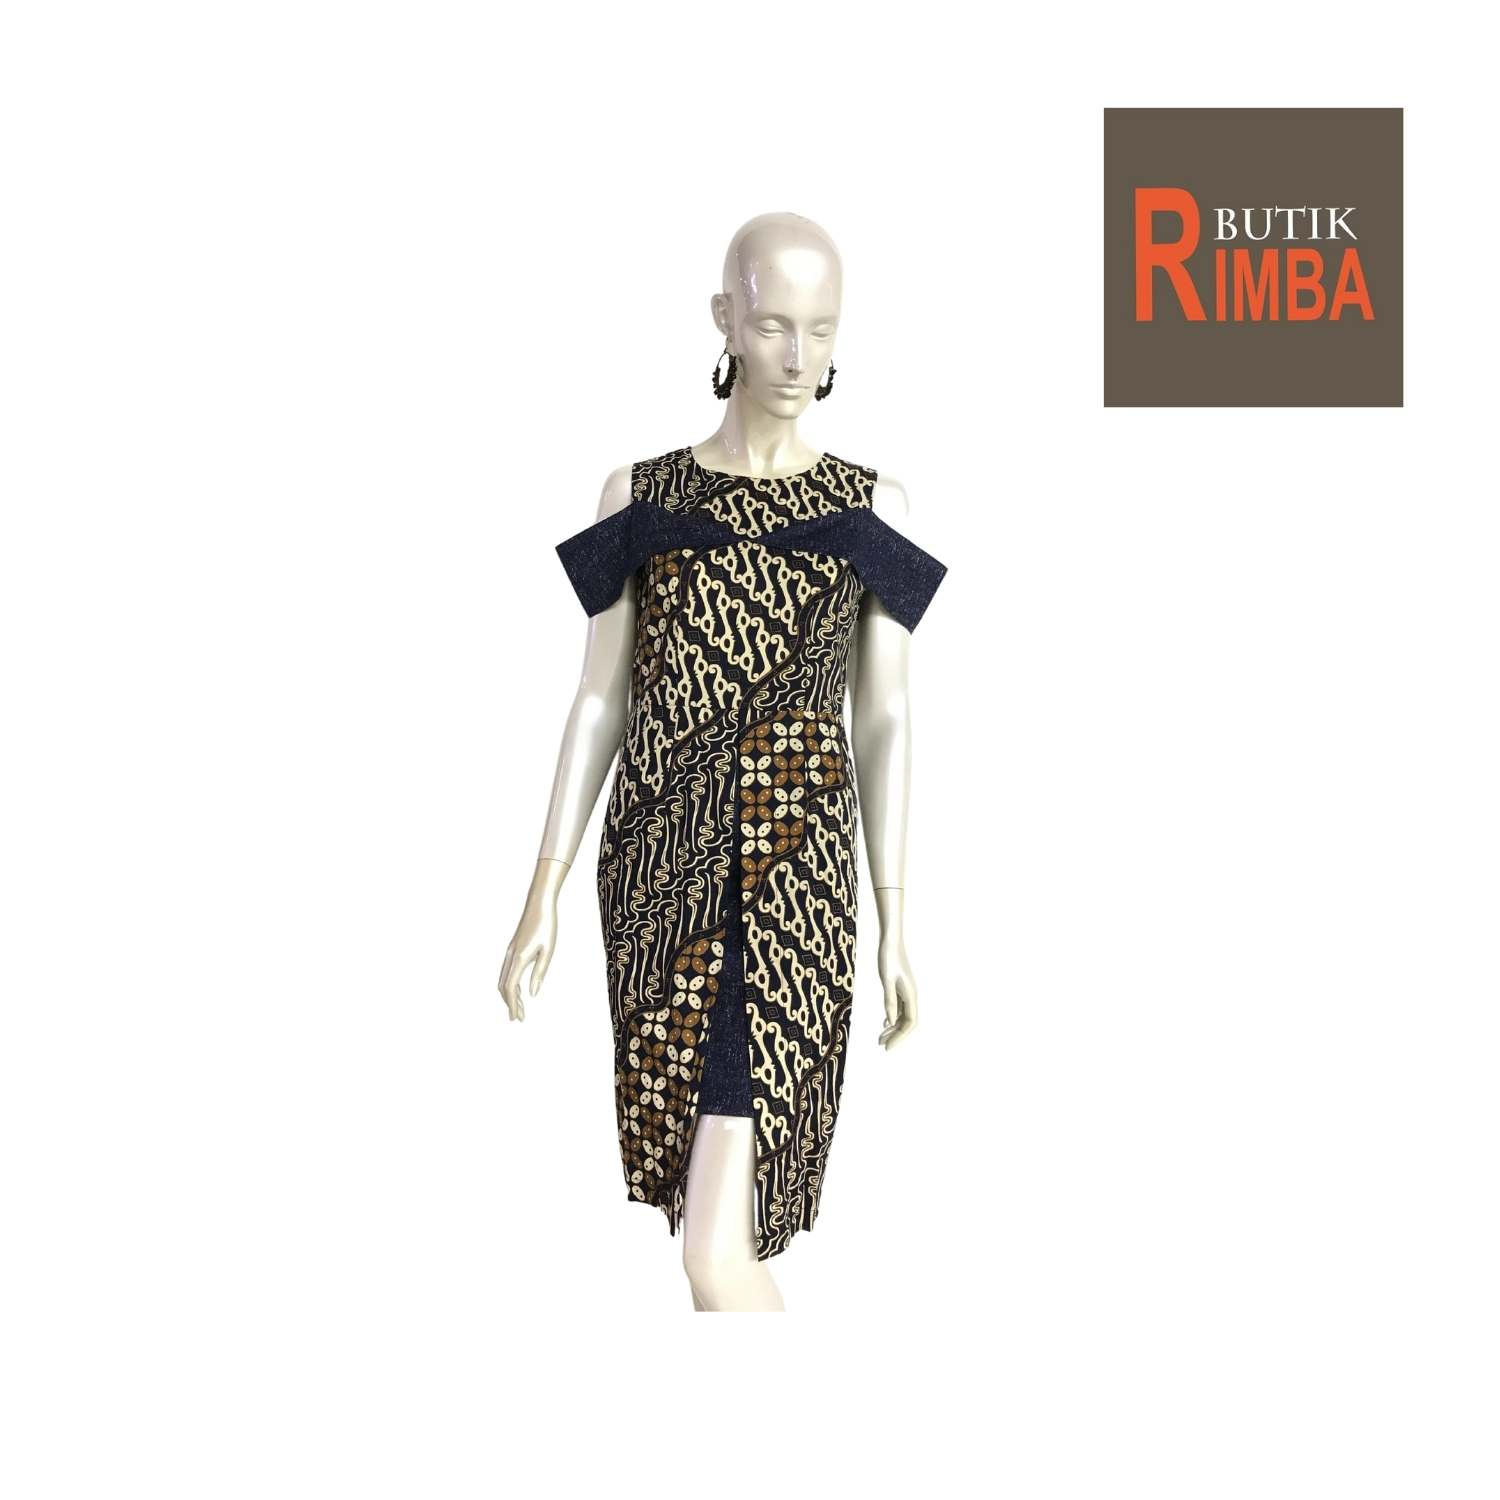 MODERN DRESS BATIK COTTON STRETCHABLE KNEE LENGTH FREE SIZE FOR FASHIONABLE WOMEN IN MIND 03